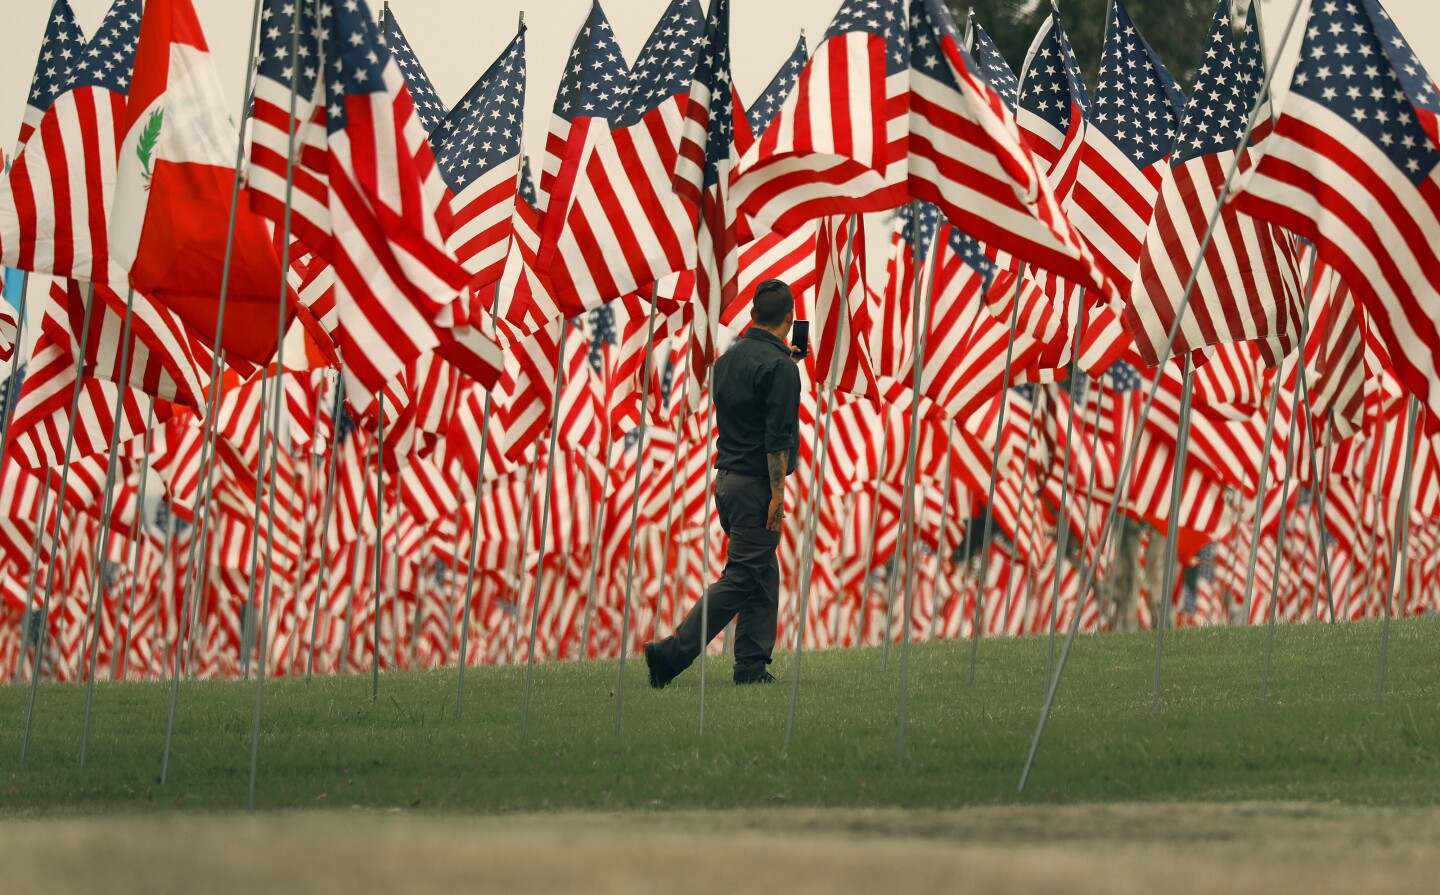 MALIBU, CA - SEPTEMBER 10: Rich Smith for his first time viewing the flags on Thursday as Pepperdine University for the 13th year is commemorating the lives lost in the terror attacks on September 11, 2001, with the Waves of Flags display at Alumni Park on the Malibu campus. In compliance with guidance provided by Los Angeles County due to the COVID-19 pandemic, the display will be closed to the public but spectators can view the display from the public sidewalk adjacent two the park. The installation commemorates the 2,977 lives lost in the terror attacks of September 11, 2001, featuring a vast display of American flags as well as international flags representing the home countries of those from abroad. Pepperdine University on Thursday, Sept. 10, 2020 in Malibu, CA. (Al Seib / Los Angeles Times